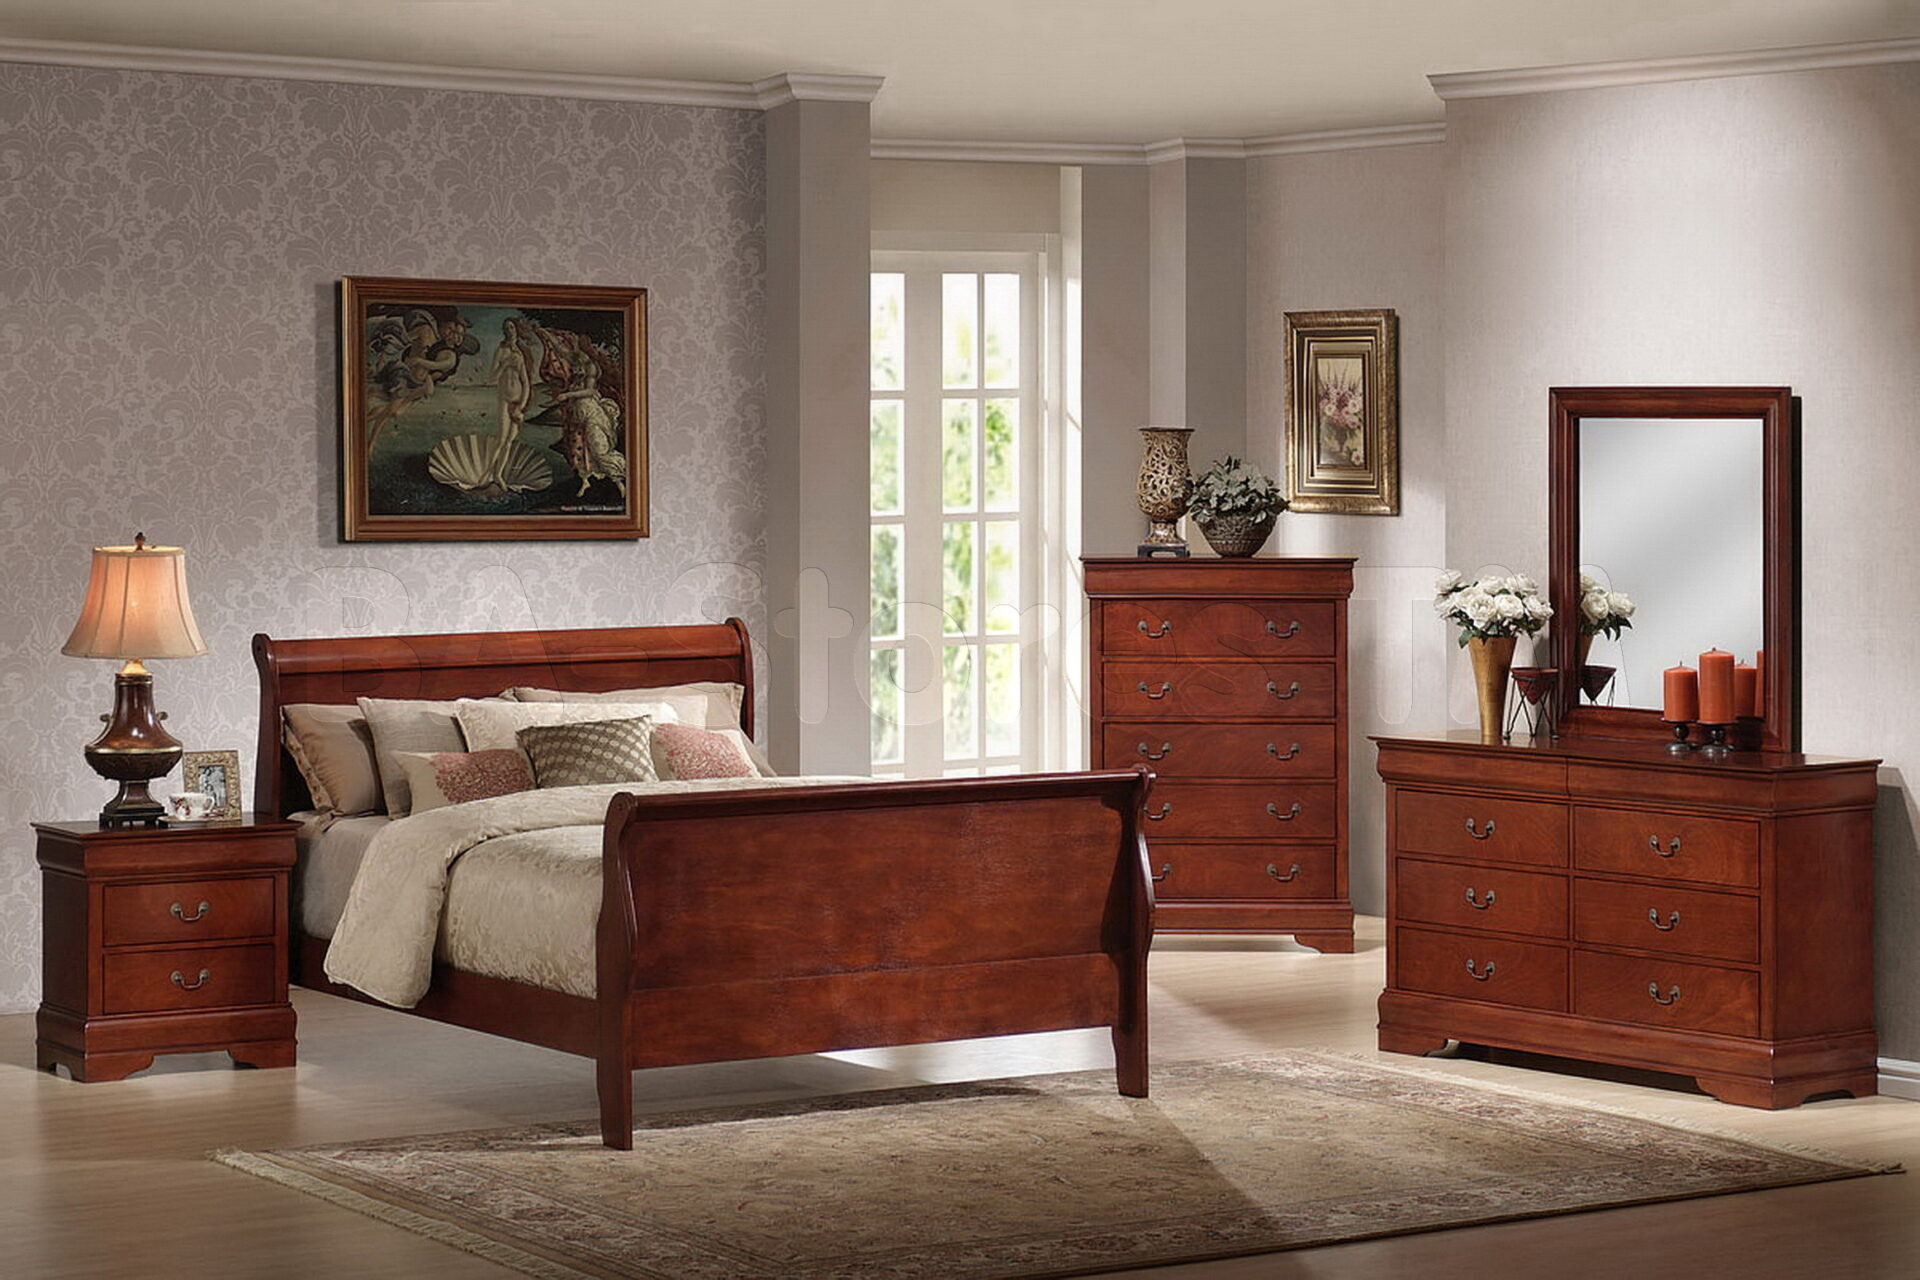 Cherry wood furniture bedroom decor ideas for Bedroom ideas oak